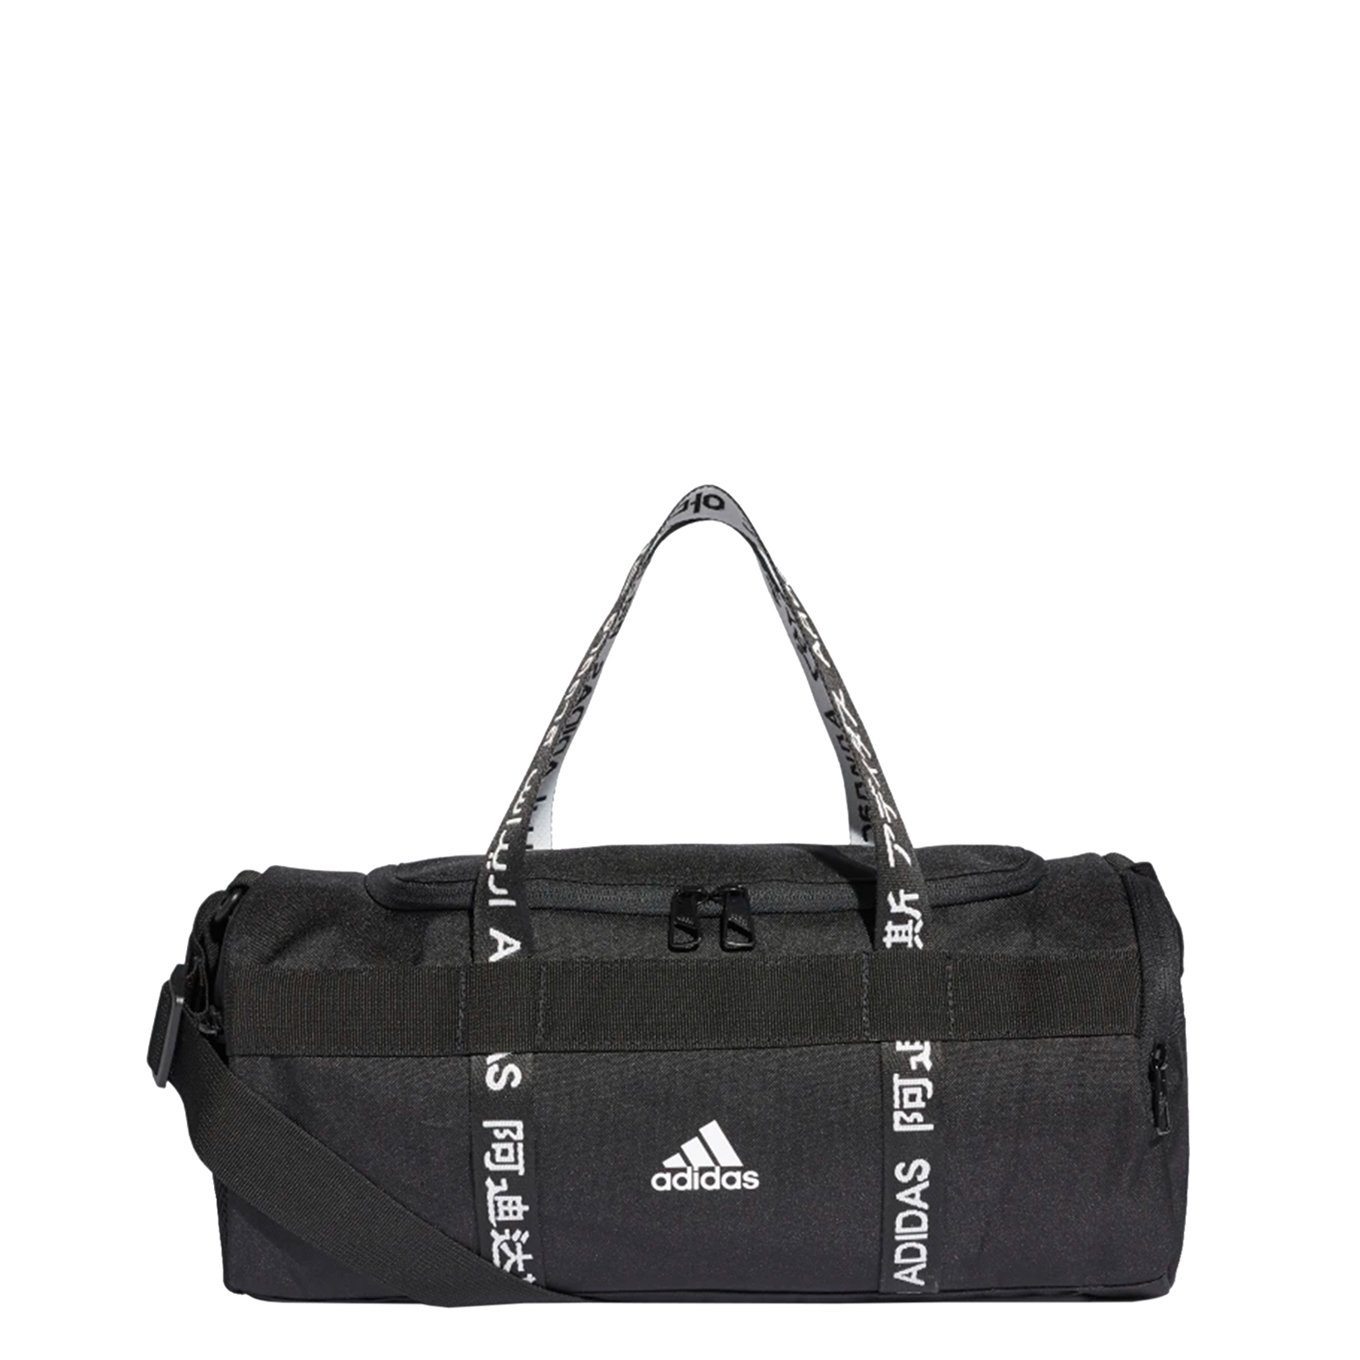 Adidas Training 4ATHLTS Duffel XS black/black/white Weekendtas <br/>€ 29.00 <br/> <a href='https://tc.tradetracker.net/?c=15082&m=779702&a=107398&u=http%3A%2F%2Fwww.travelbags.nl%3A80%2Fadidas-training-4athlts-duffel-xs-black-black-white.html' target='_blank'>Bestellen</a>